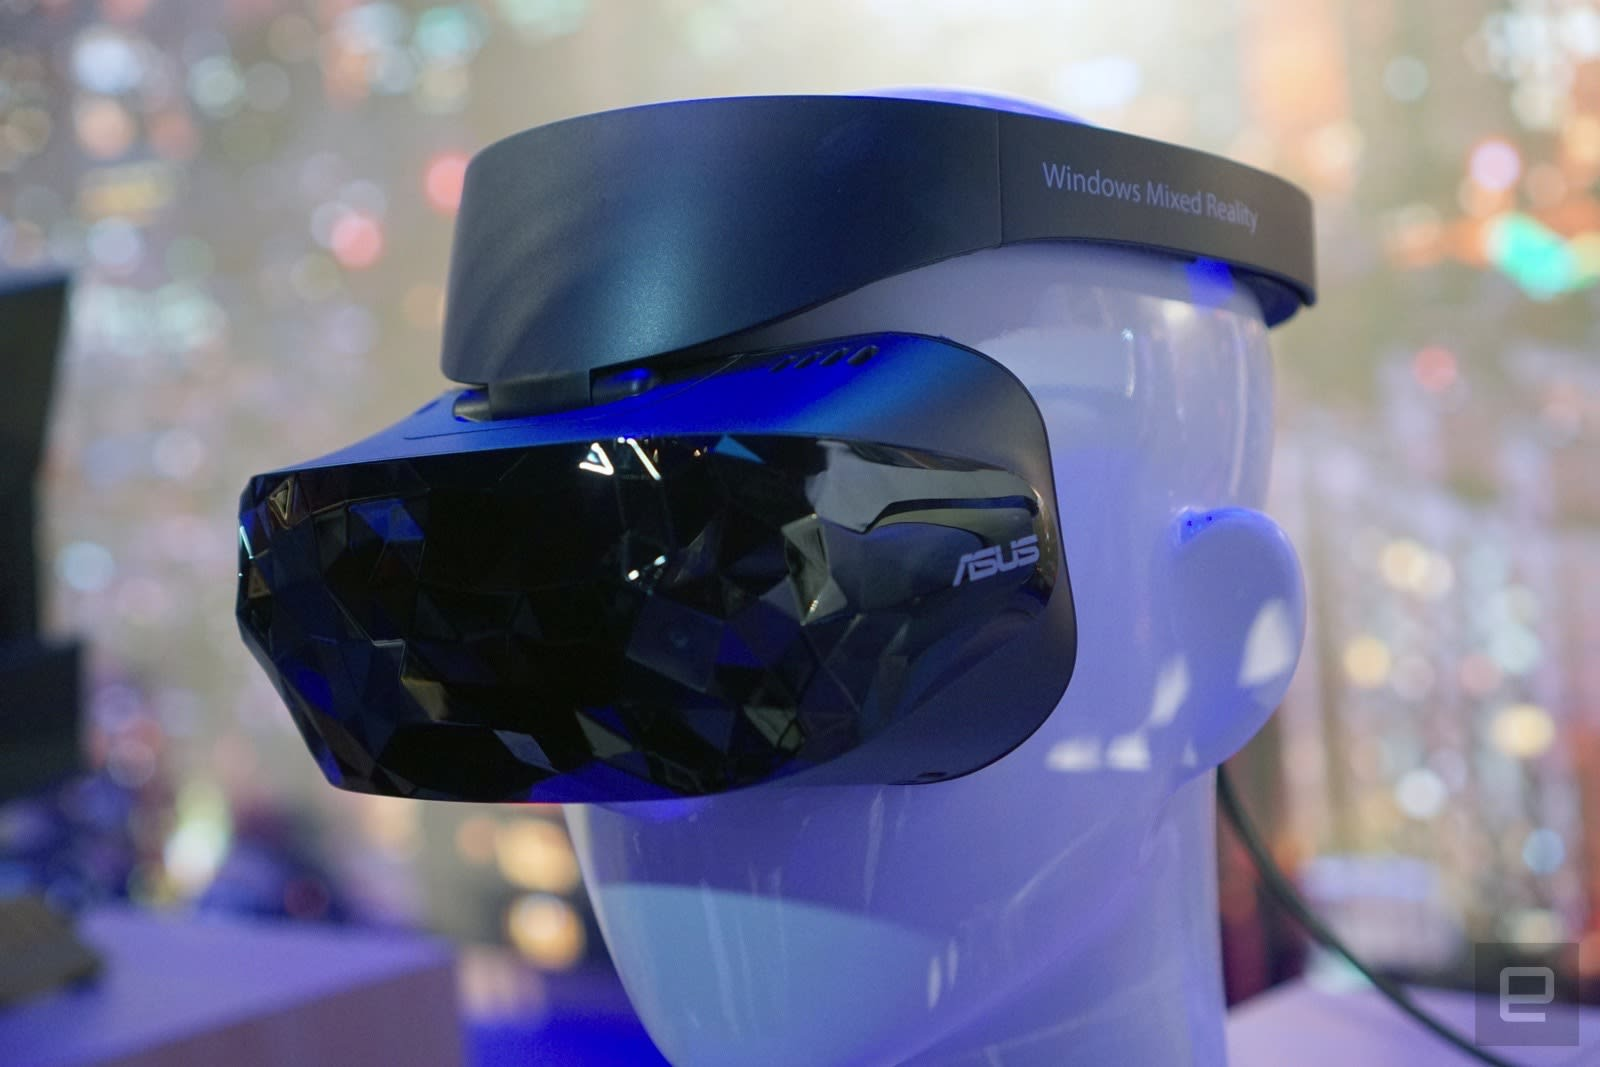 Hulu's VR content is now available on Windows Mixed Reality